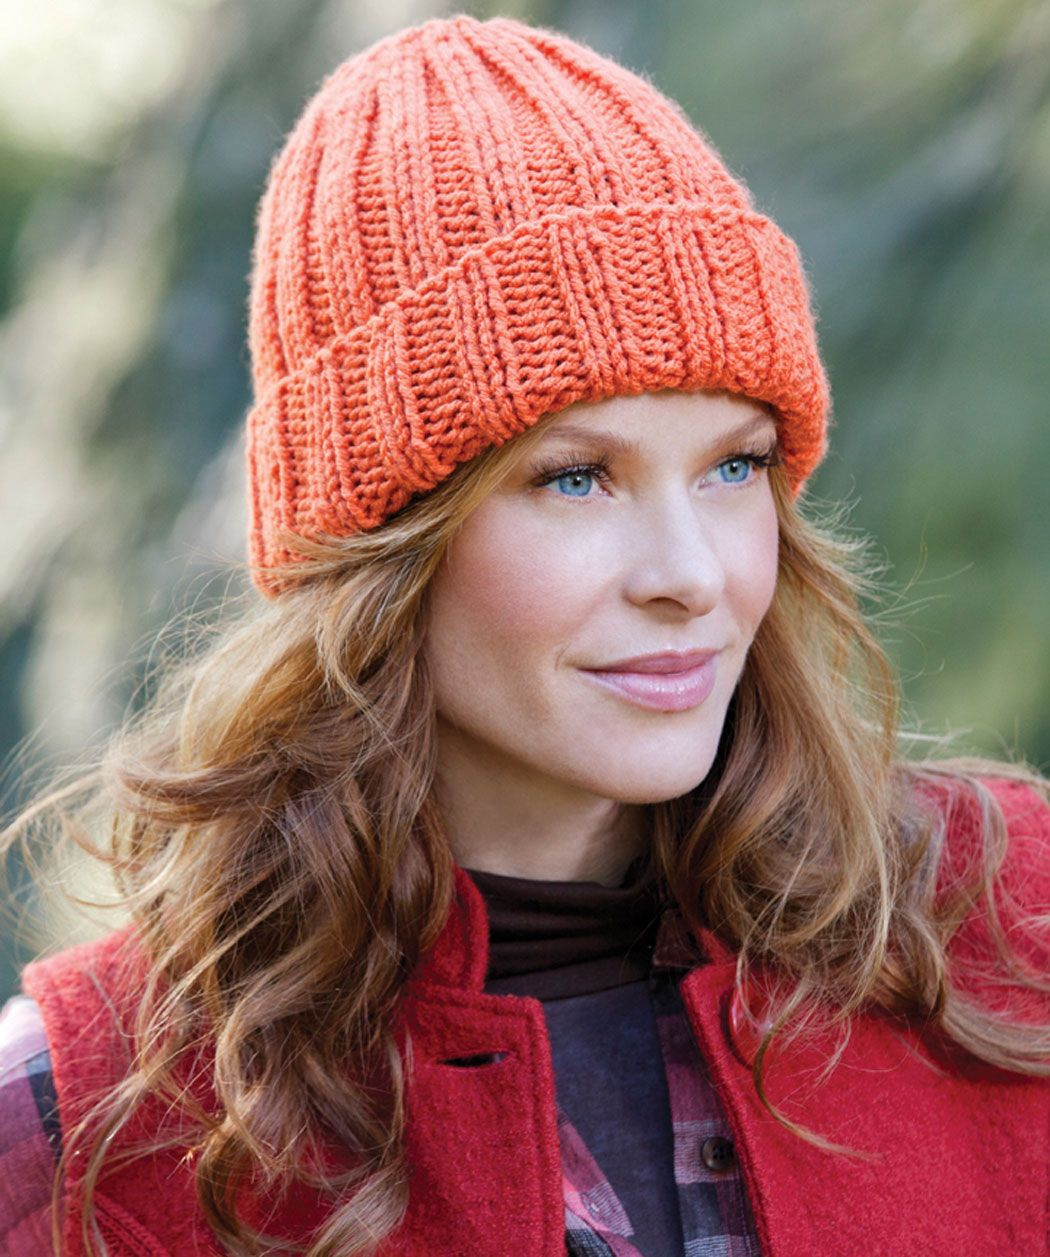 Easy fit ribbed hat red heart yarns free patterns pinterest easy fit ribbed hat free knitting pattern in red heart yarns bankloansurffo Images